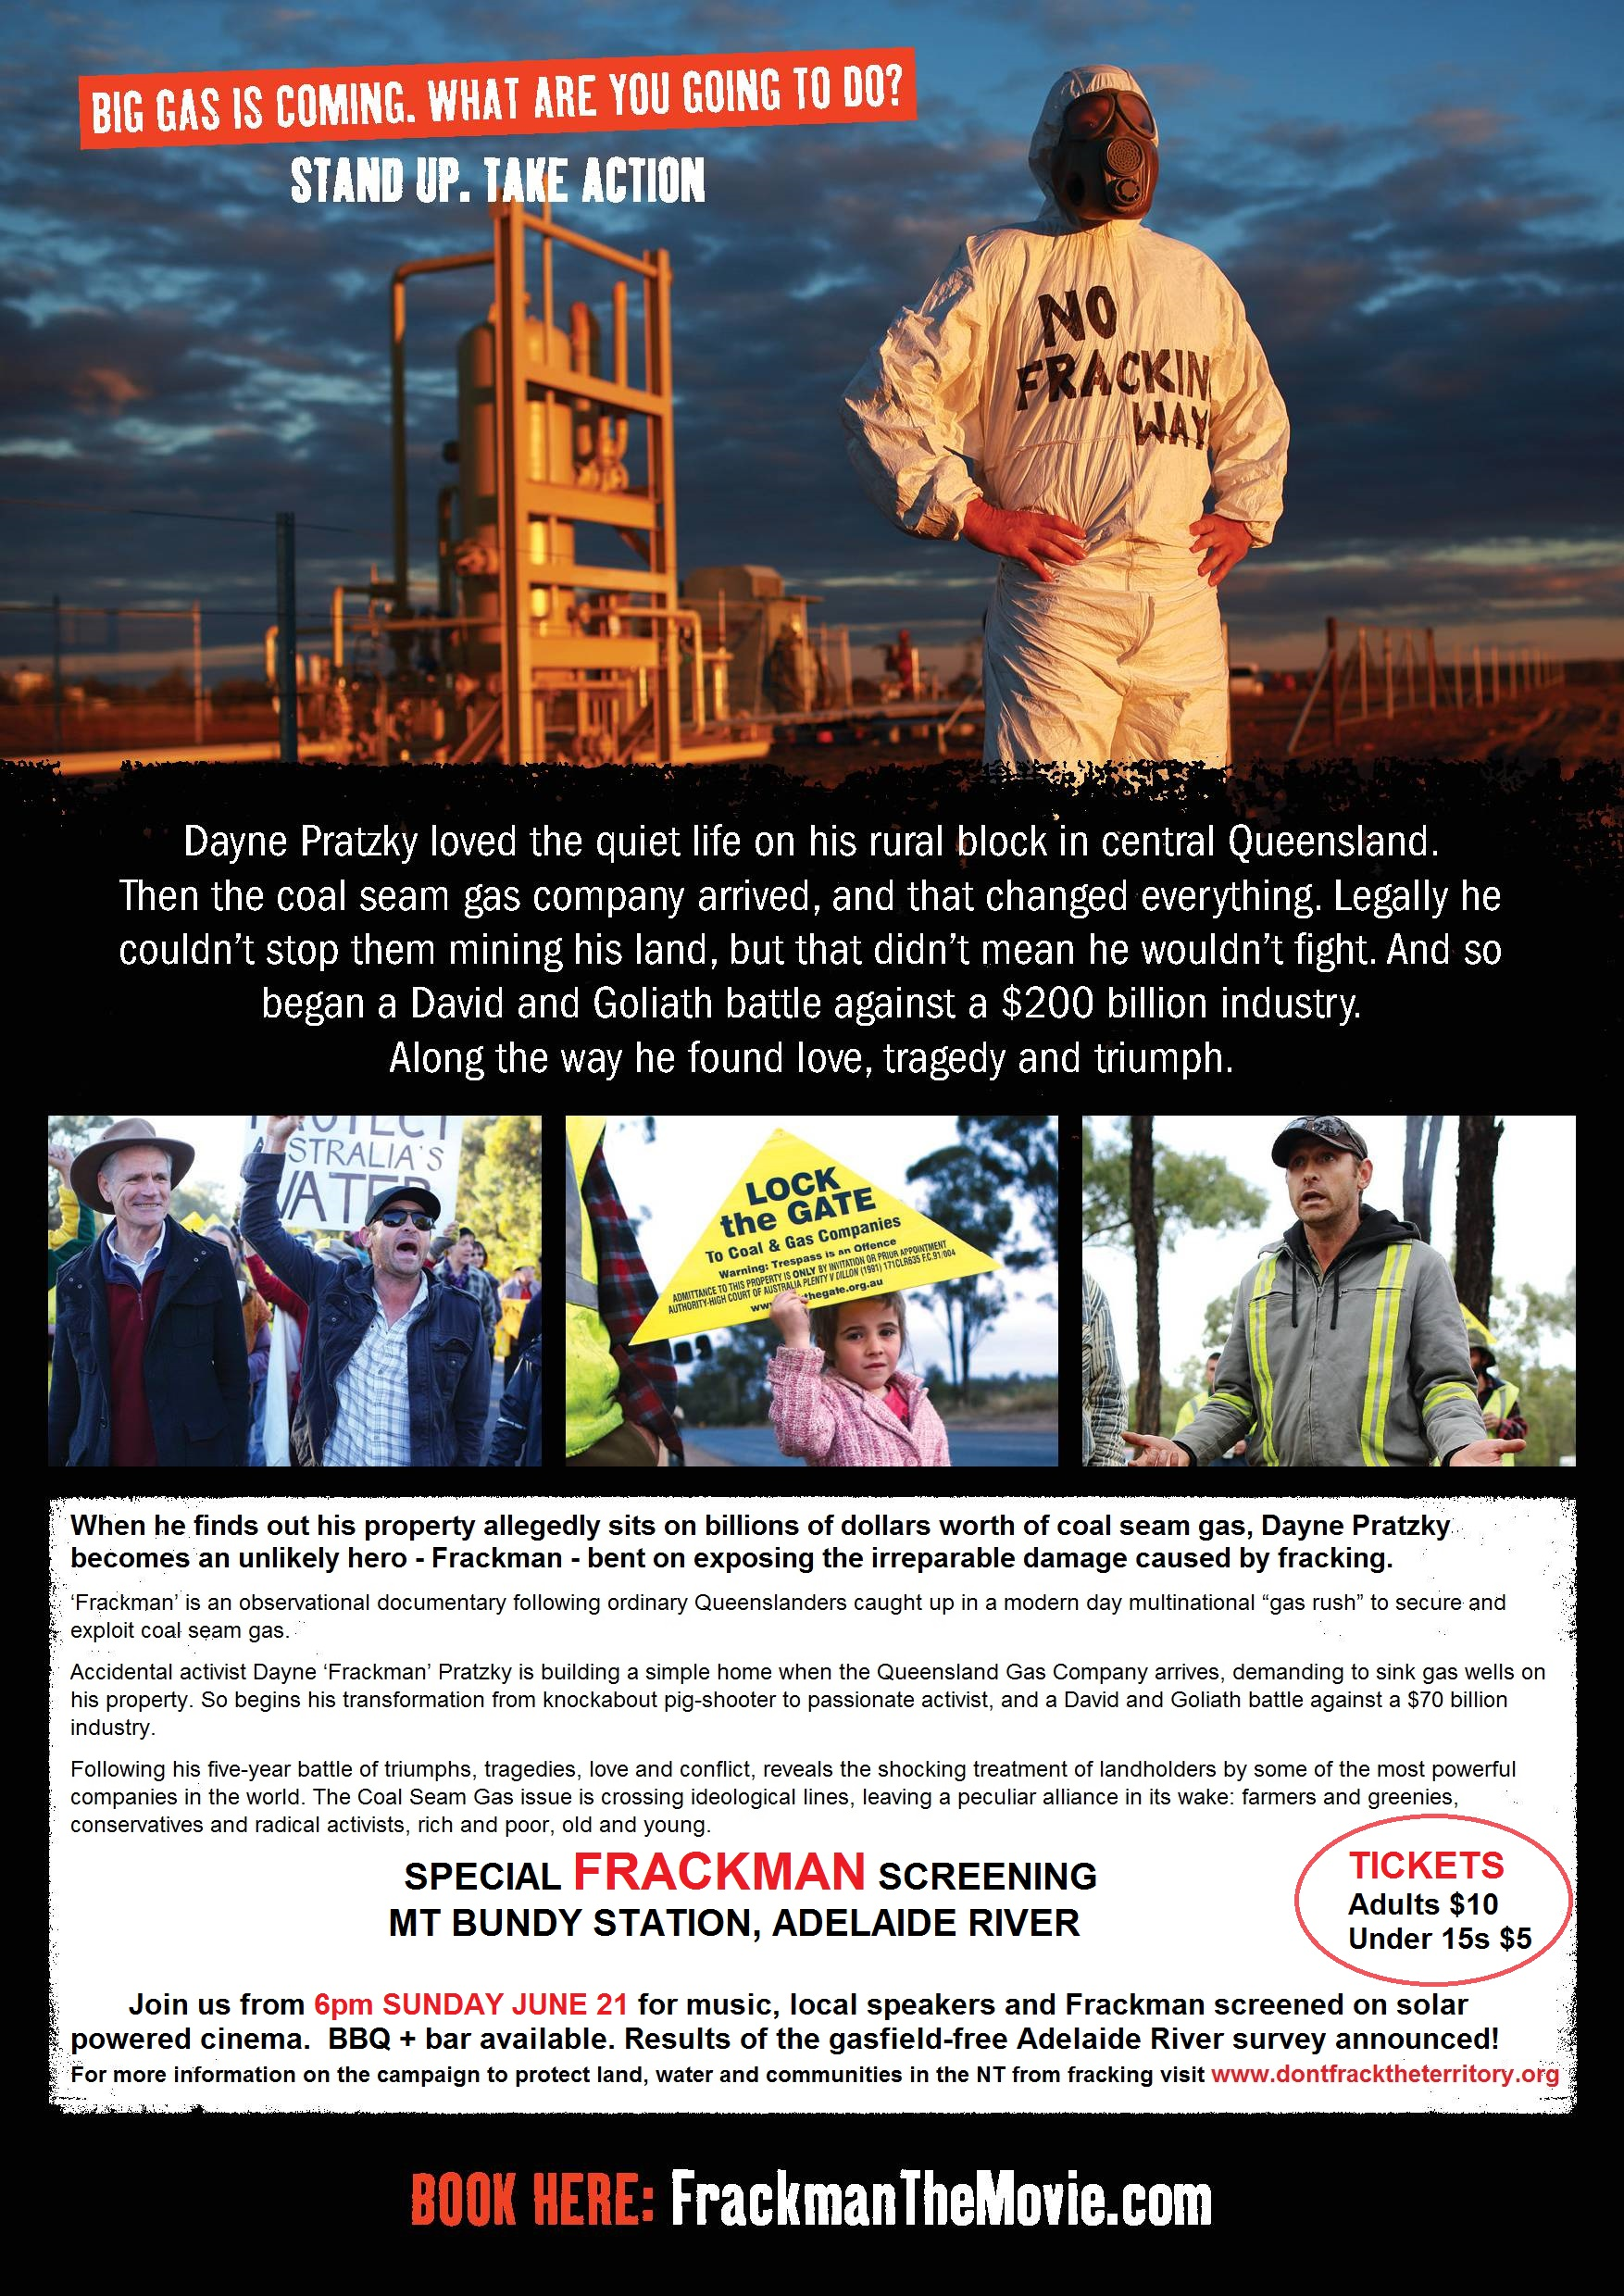 Frackman screening Adelaide River